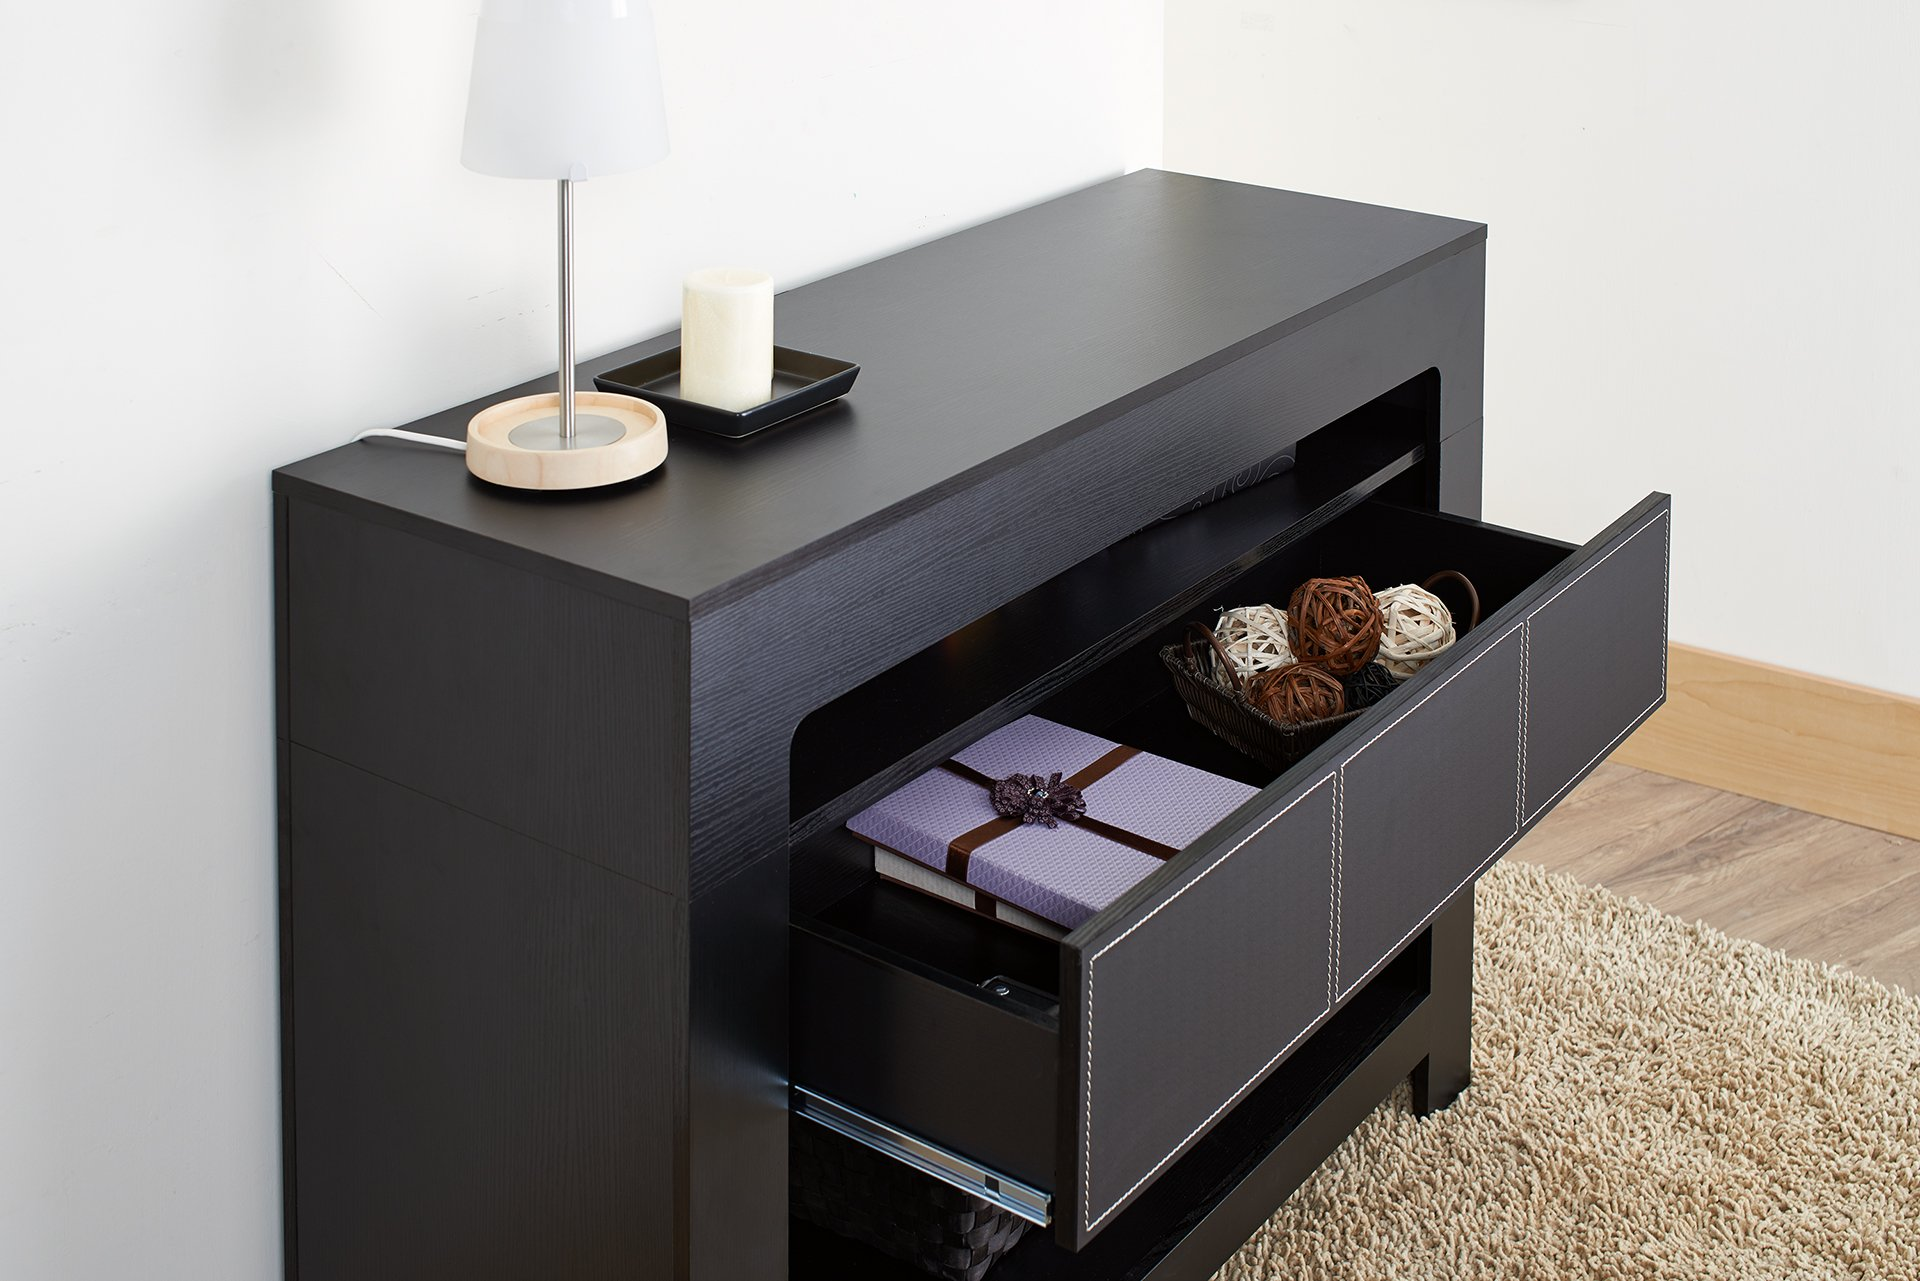 ioHOMES Lado Contemporary Console Table, Black by HOMES: Inside + Out (Image #5)